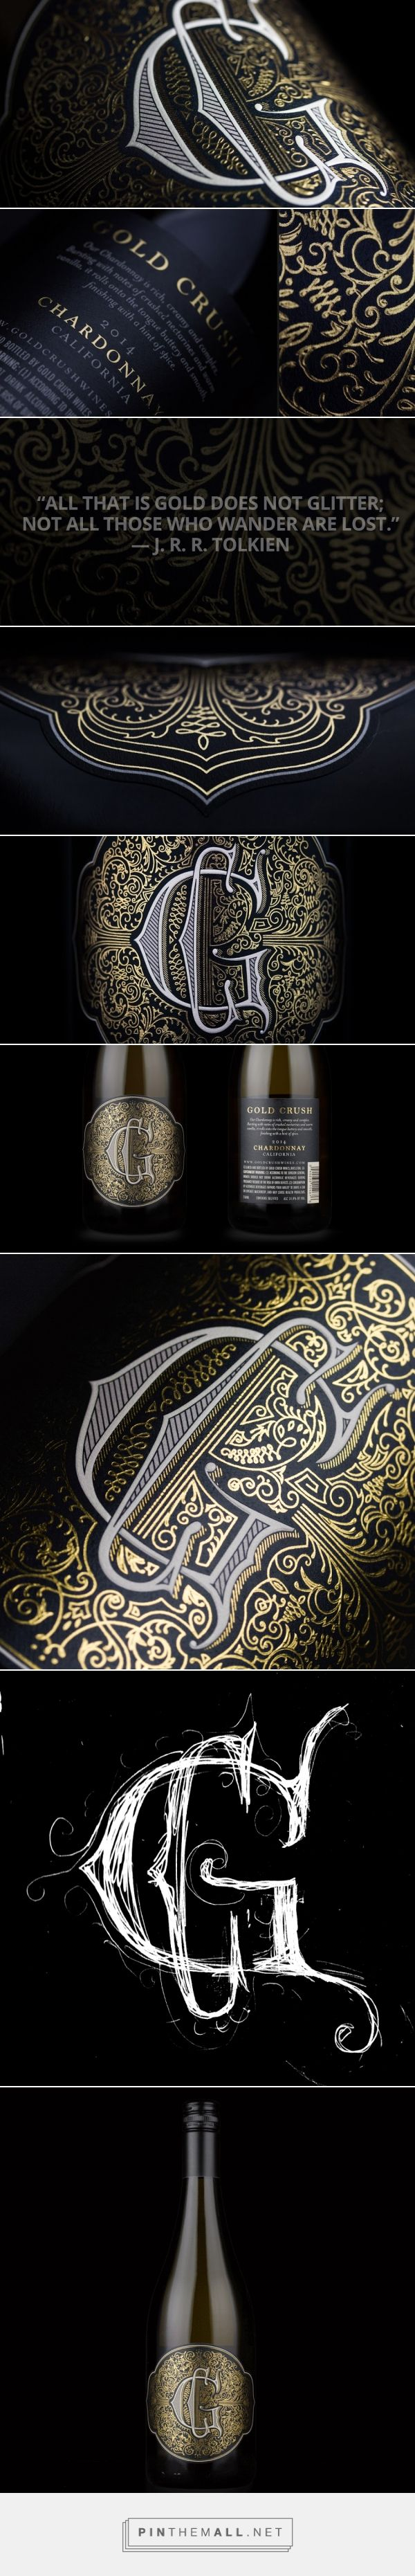 Gold Crush wine label design by Makers & Allies (USA) - http://www.packagingoftheworld.com/2016/06/gold-crush.html